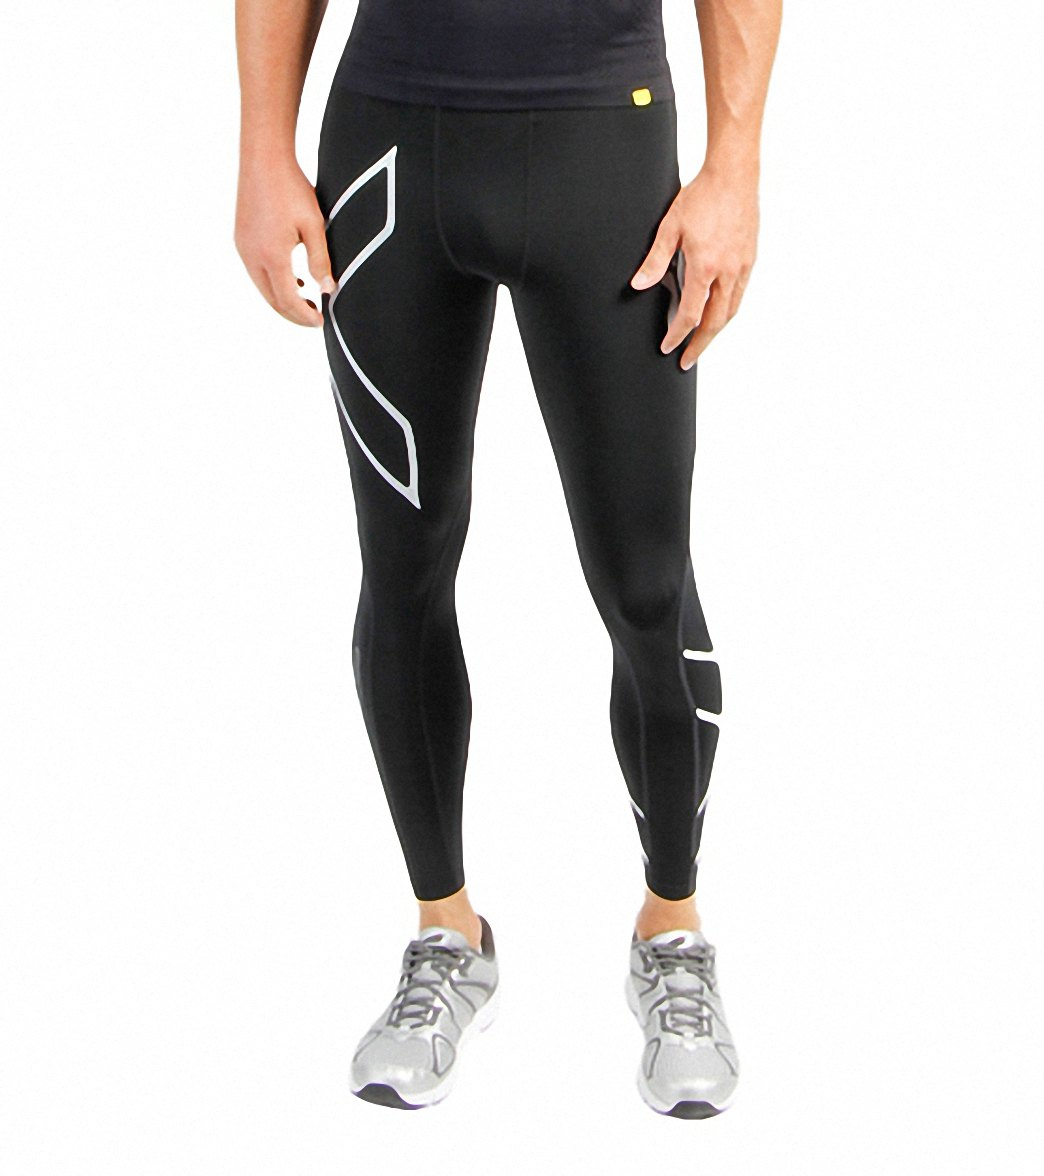 f567225f5bad9 2XU Men's Thermal Compression Tights at SwimOutlet.com - Free ...